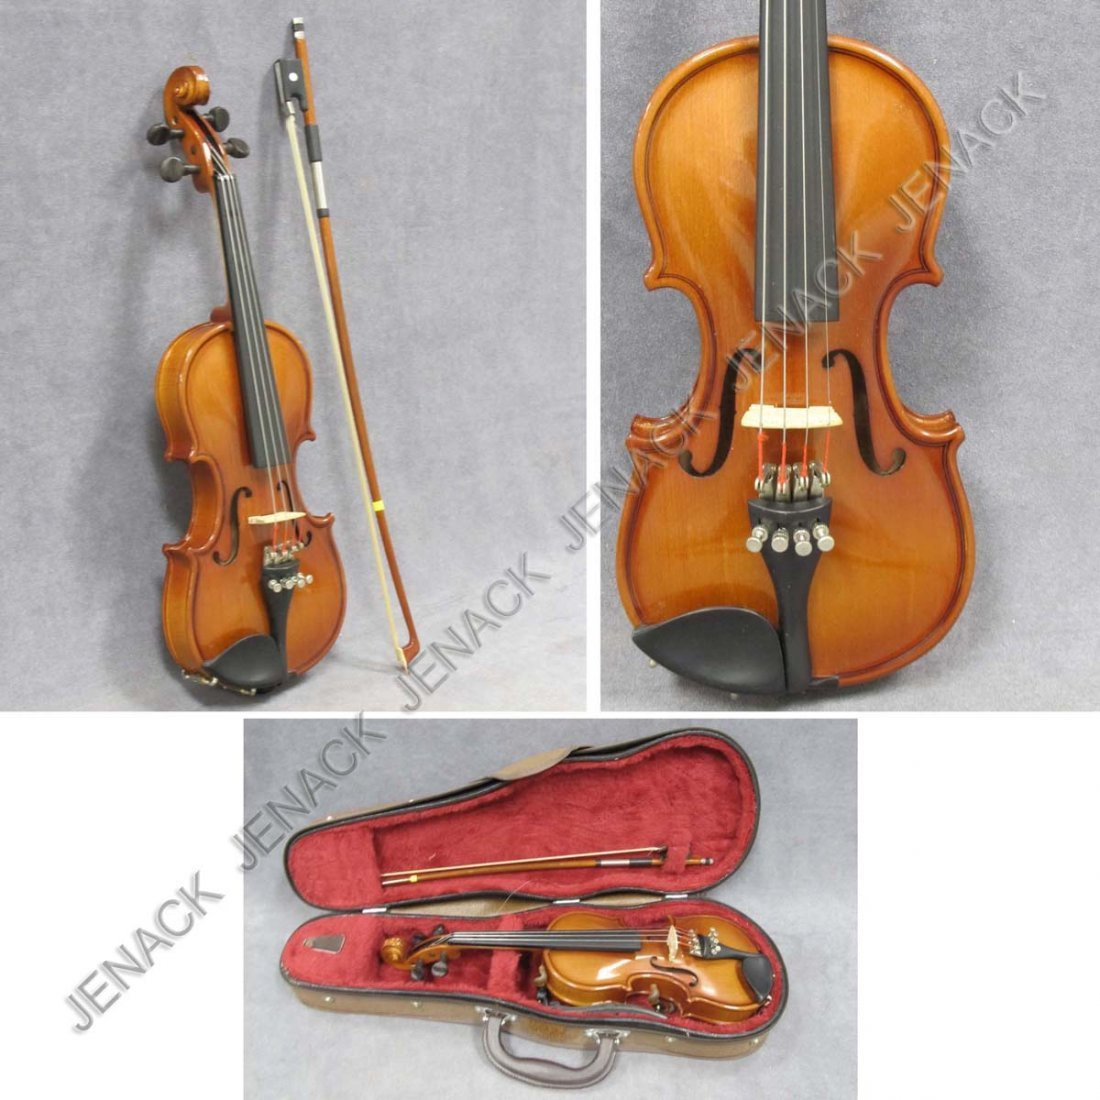 10: CHILD'S HALF-SIZE VIOLIN WITH BOW AND CASE